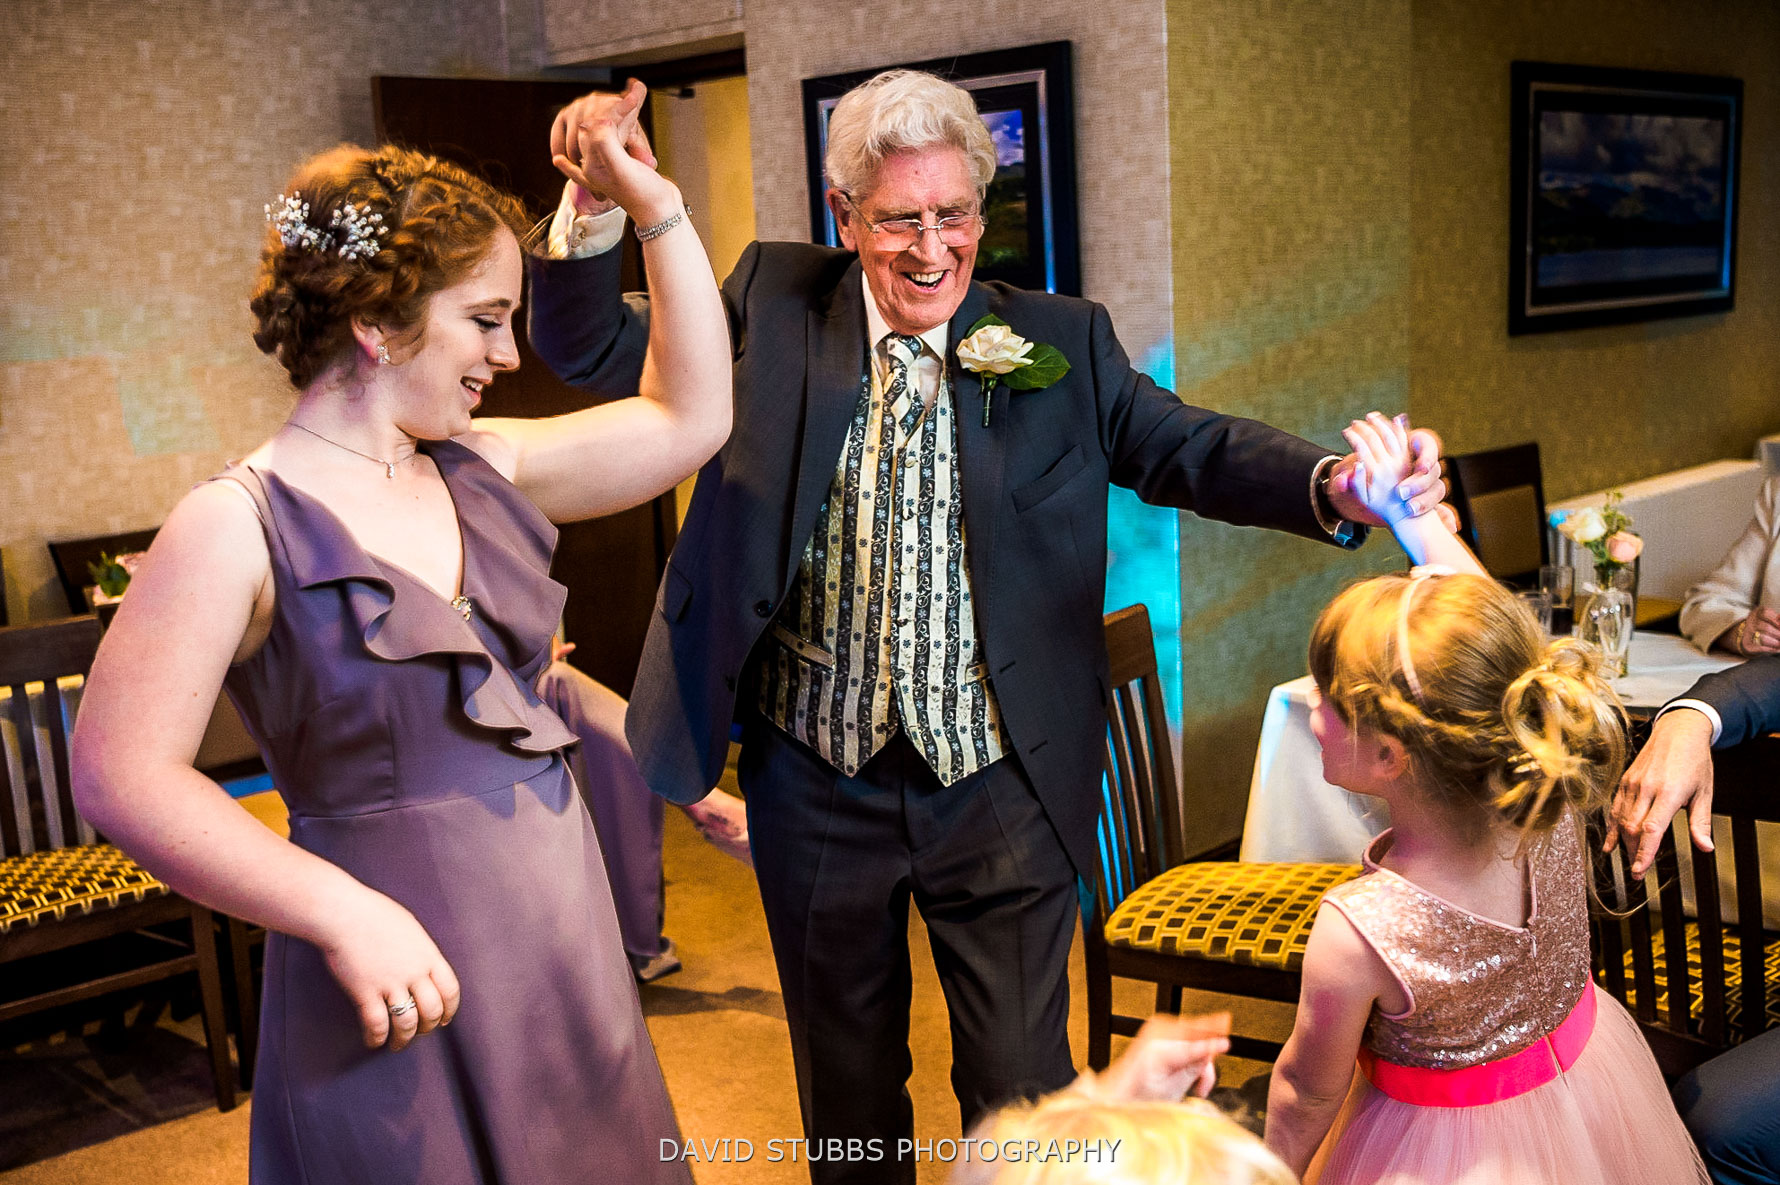 dancing with grandad